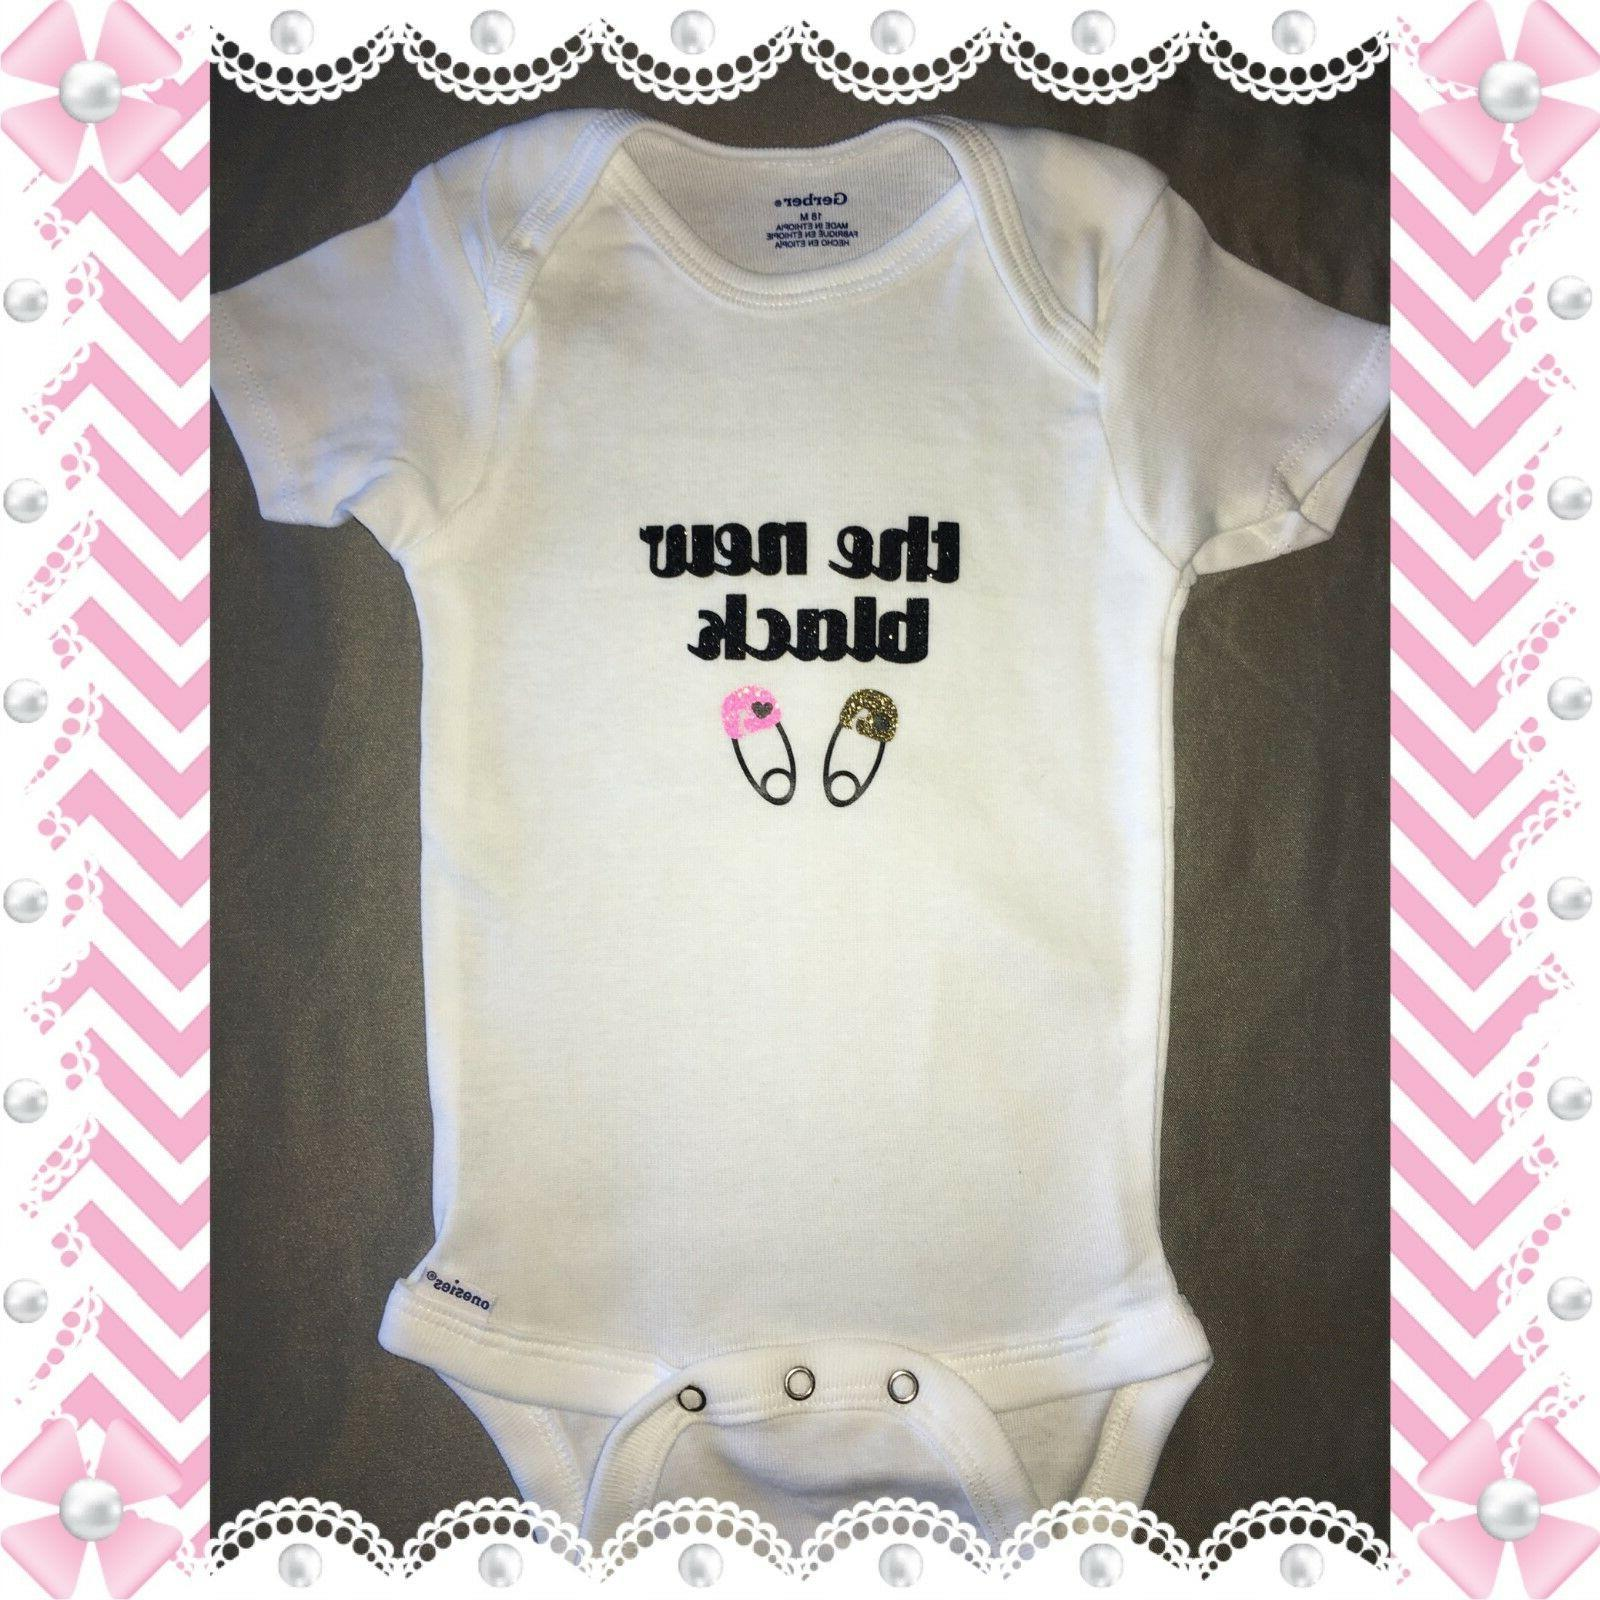 the new black custom cute personalized baby